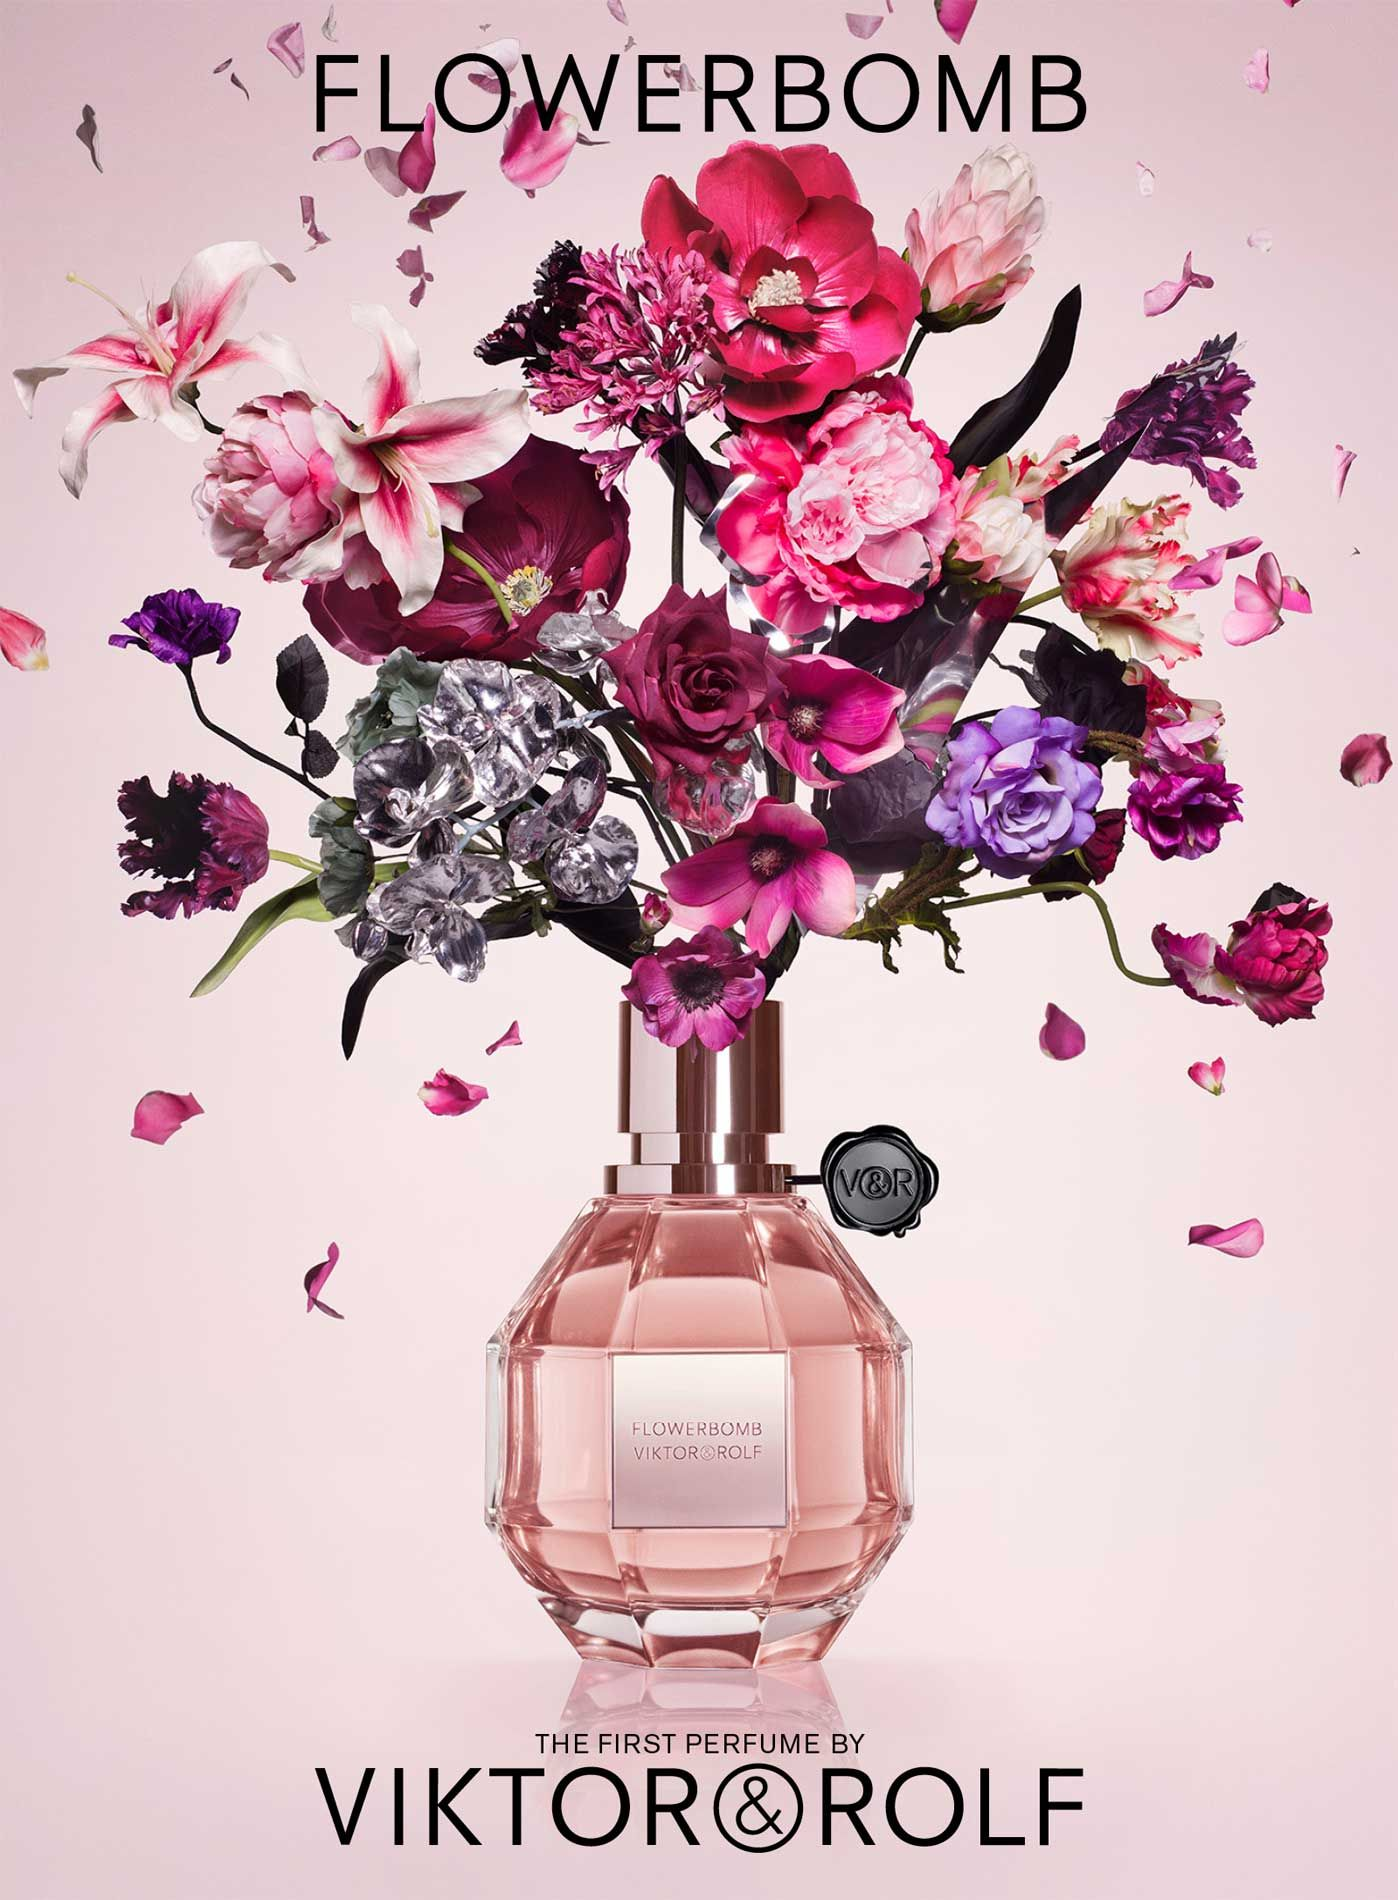 Flowerbomb Perfume By Viktor And Rolf Aff Flower Bomb Flowerbomb Perfume Perfume Design